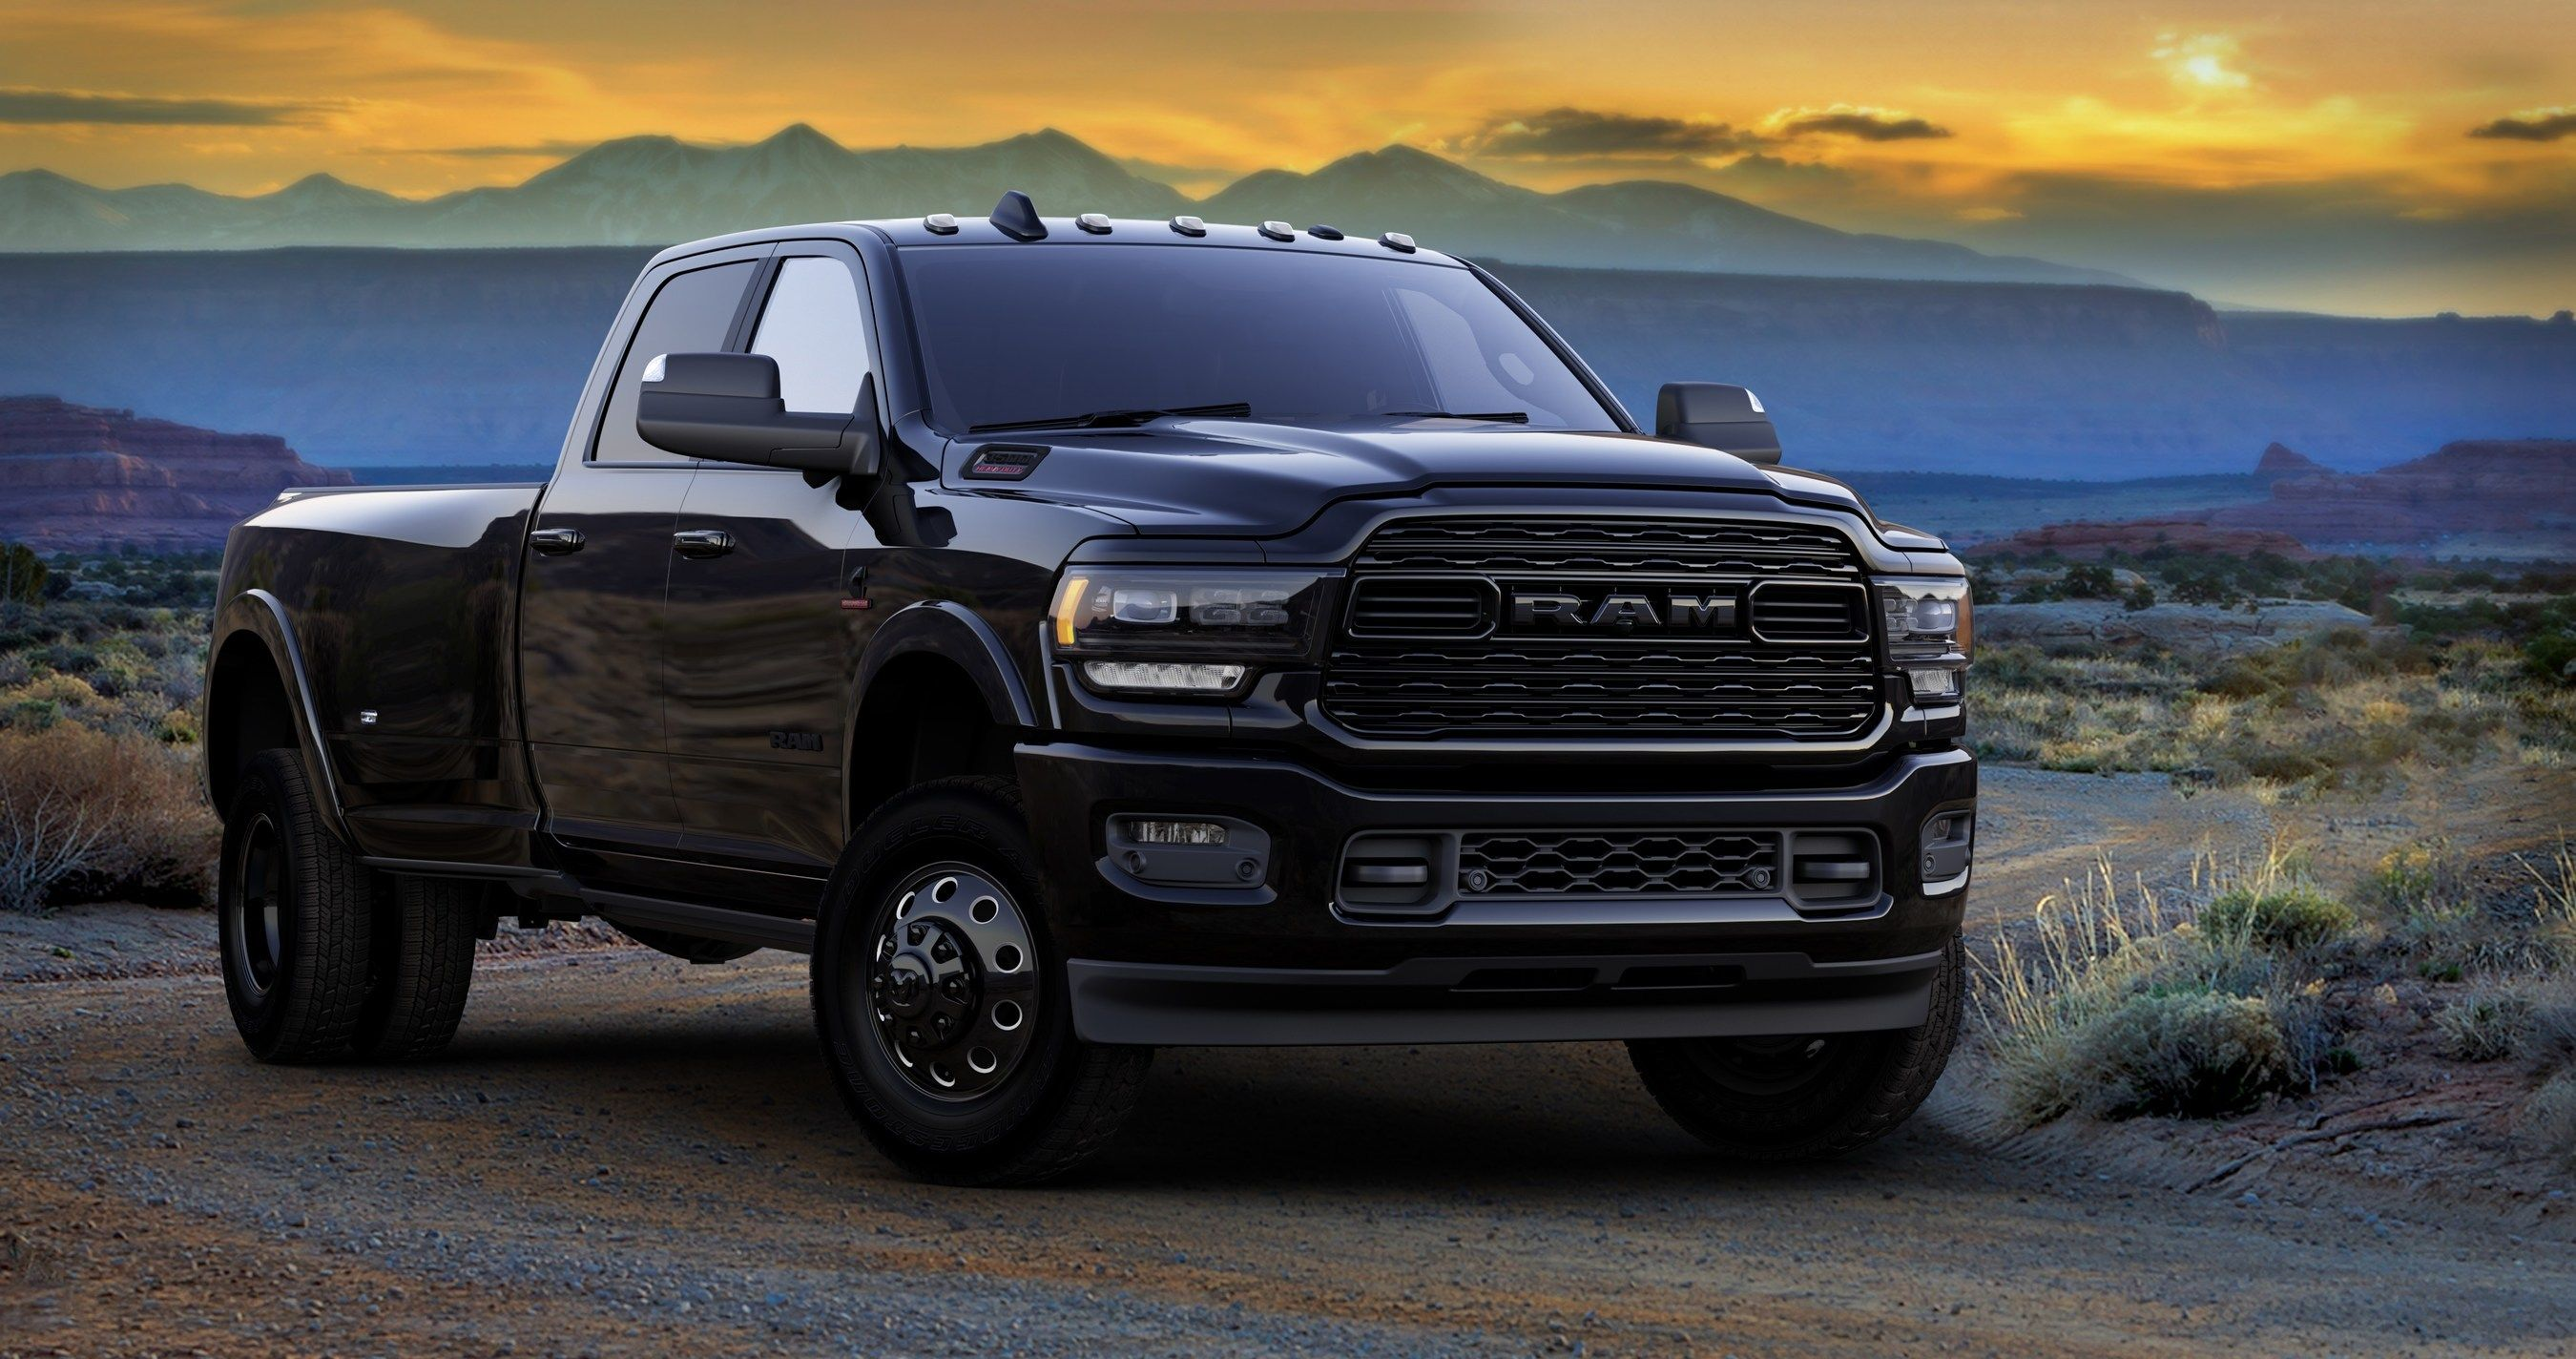 2020 Ram Hd Limited Adds Blackout Package To Ram 2500 3500 Models